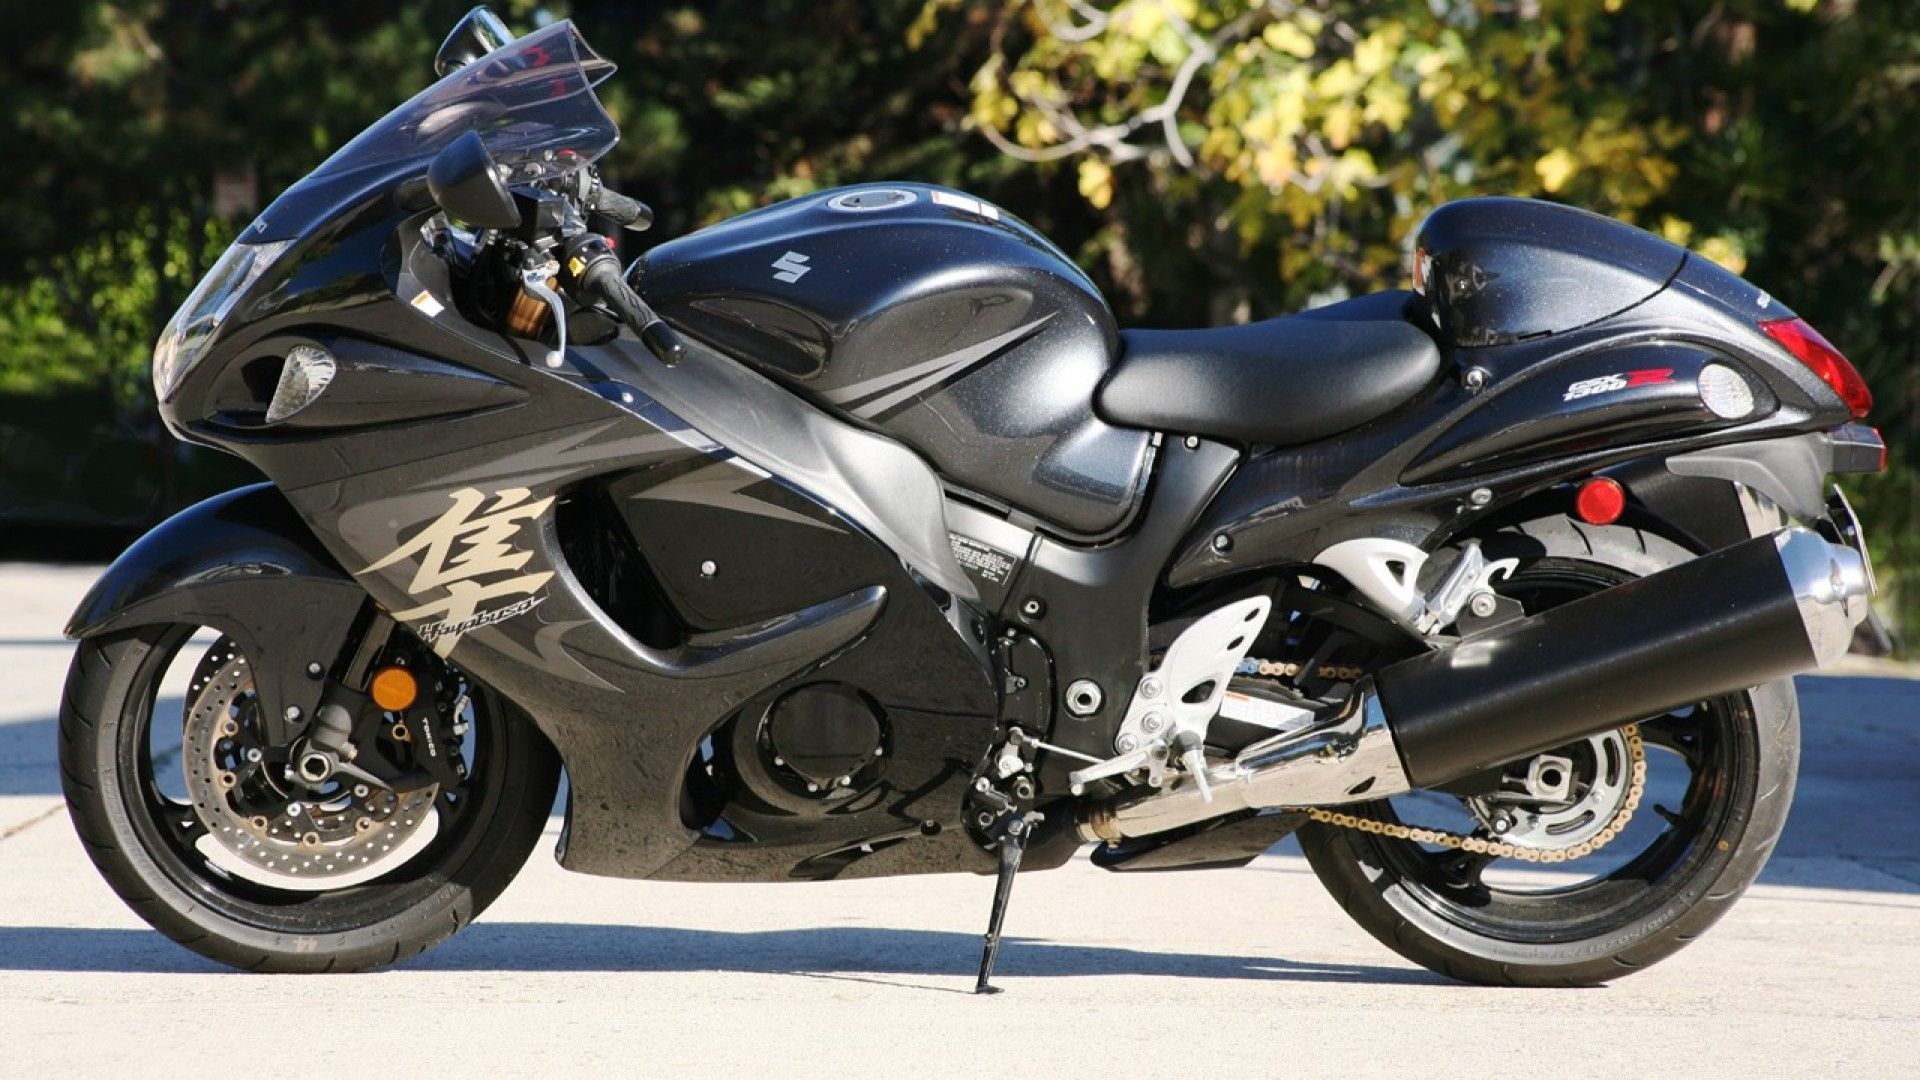 Lovely BEST SPORTS BIKE: Suzuki_Hayabusa / Street Bikes Are All About Speed And  Frankly No One Comes Close. Design Ideas